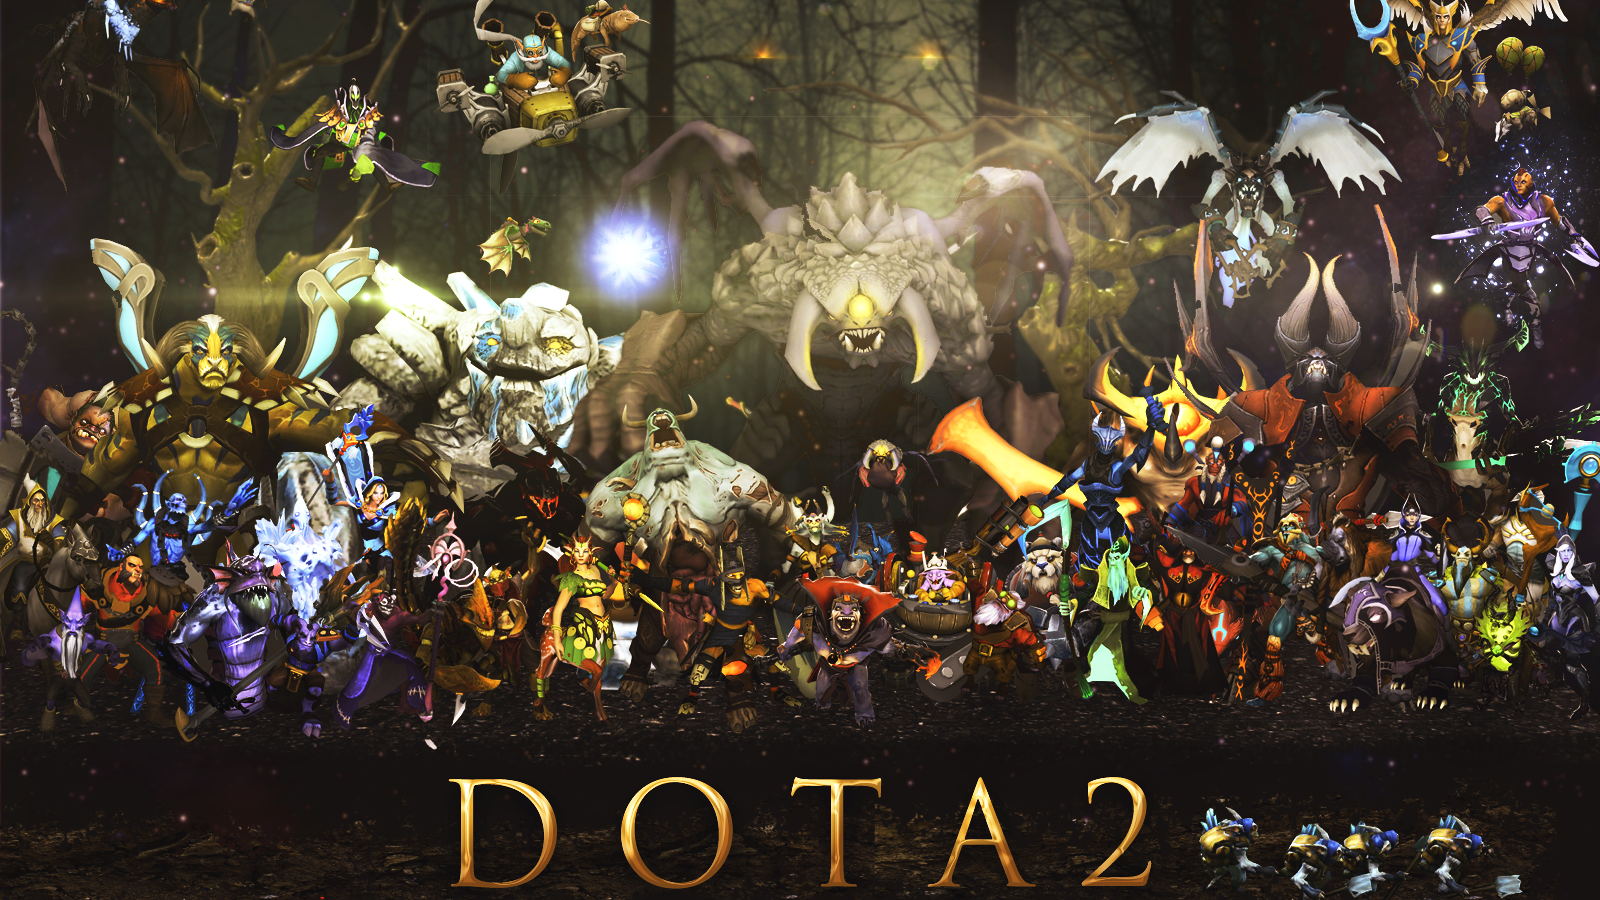 Dota Banned In A District In The Philippines Due To Violent Fans